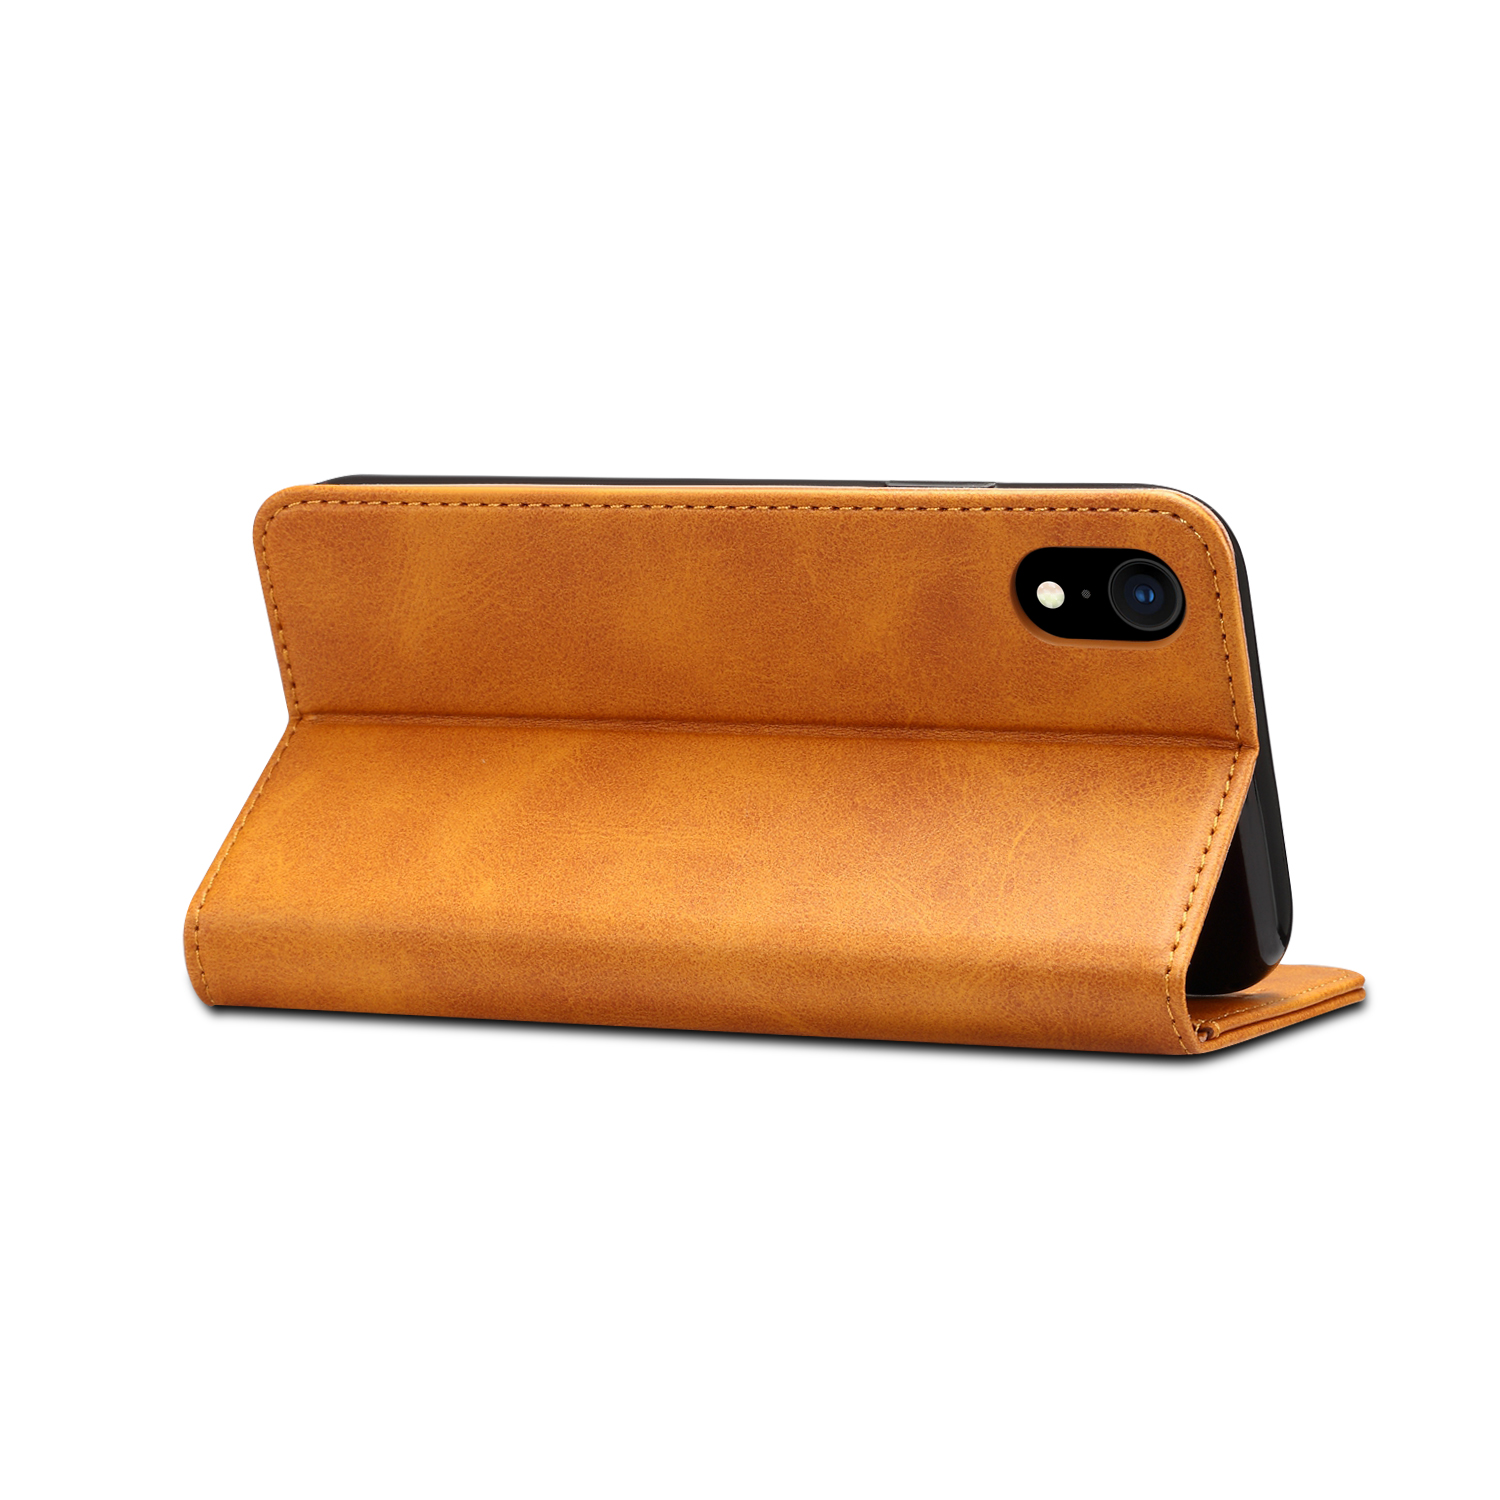 Bakeey Protective Case For iPhone XR Magnetic Flip Wallet Card Slot Cash Pocket Full Body Cover